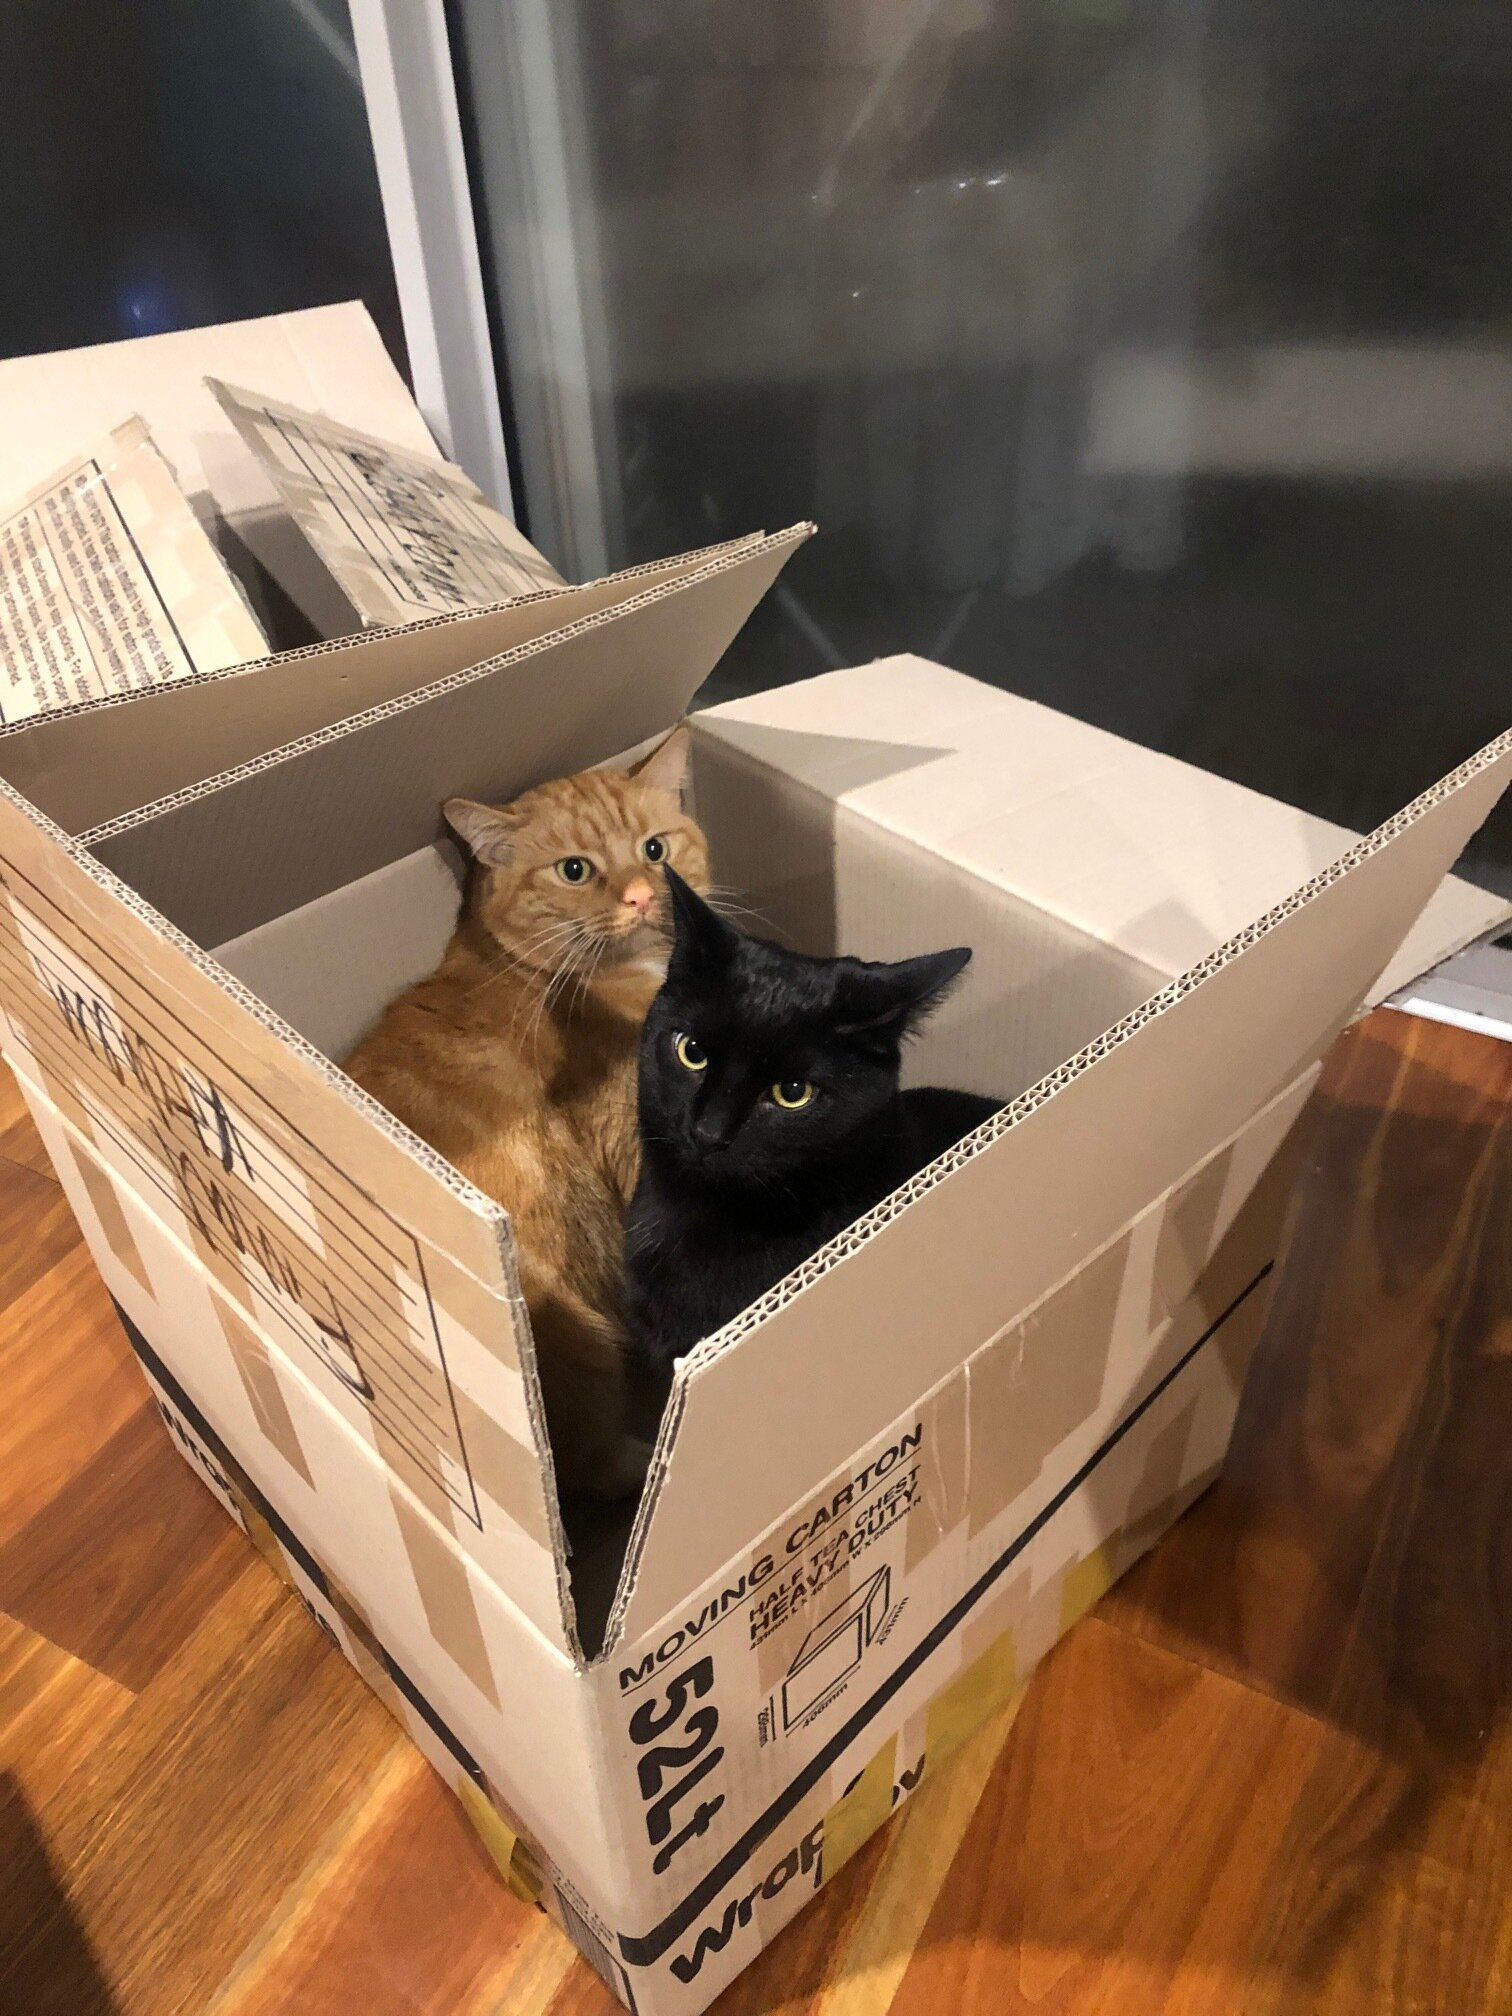 The cats did not love the moving process - they did enjoy the boxes, though.